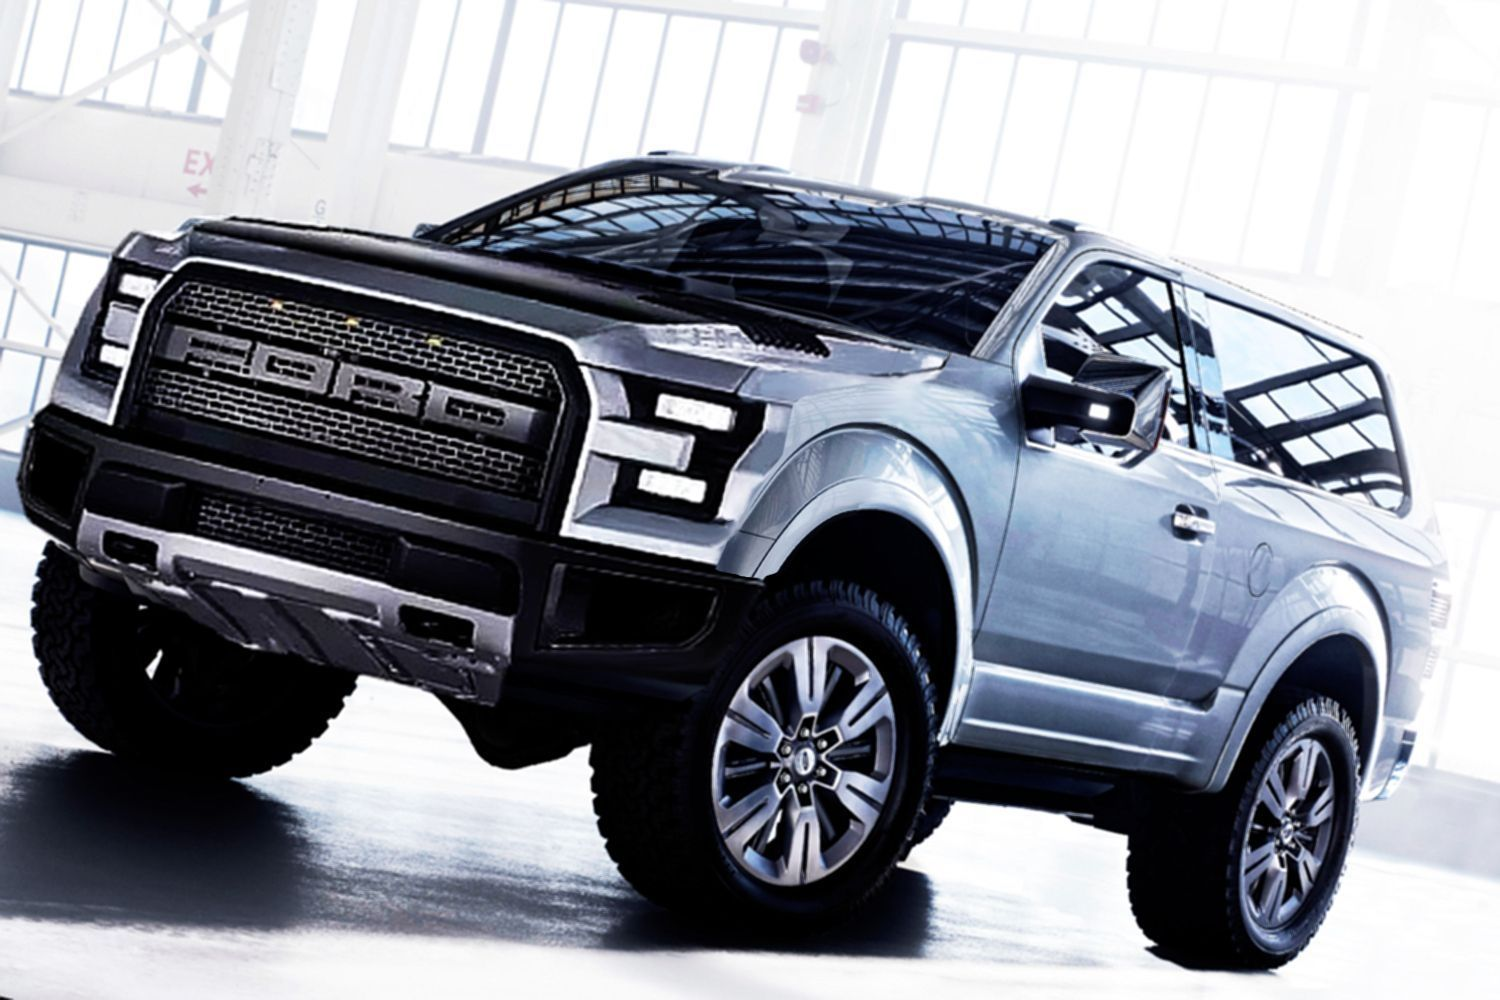 The 2020 Ford Svt Bronco Raptor Picture Release Date And Review Ford Bronco 2017 Ford Bronco Ford Svt